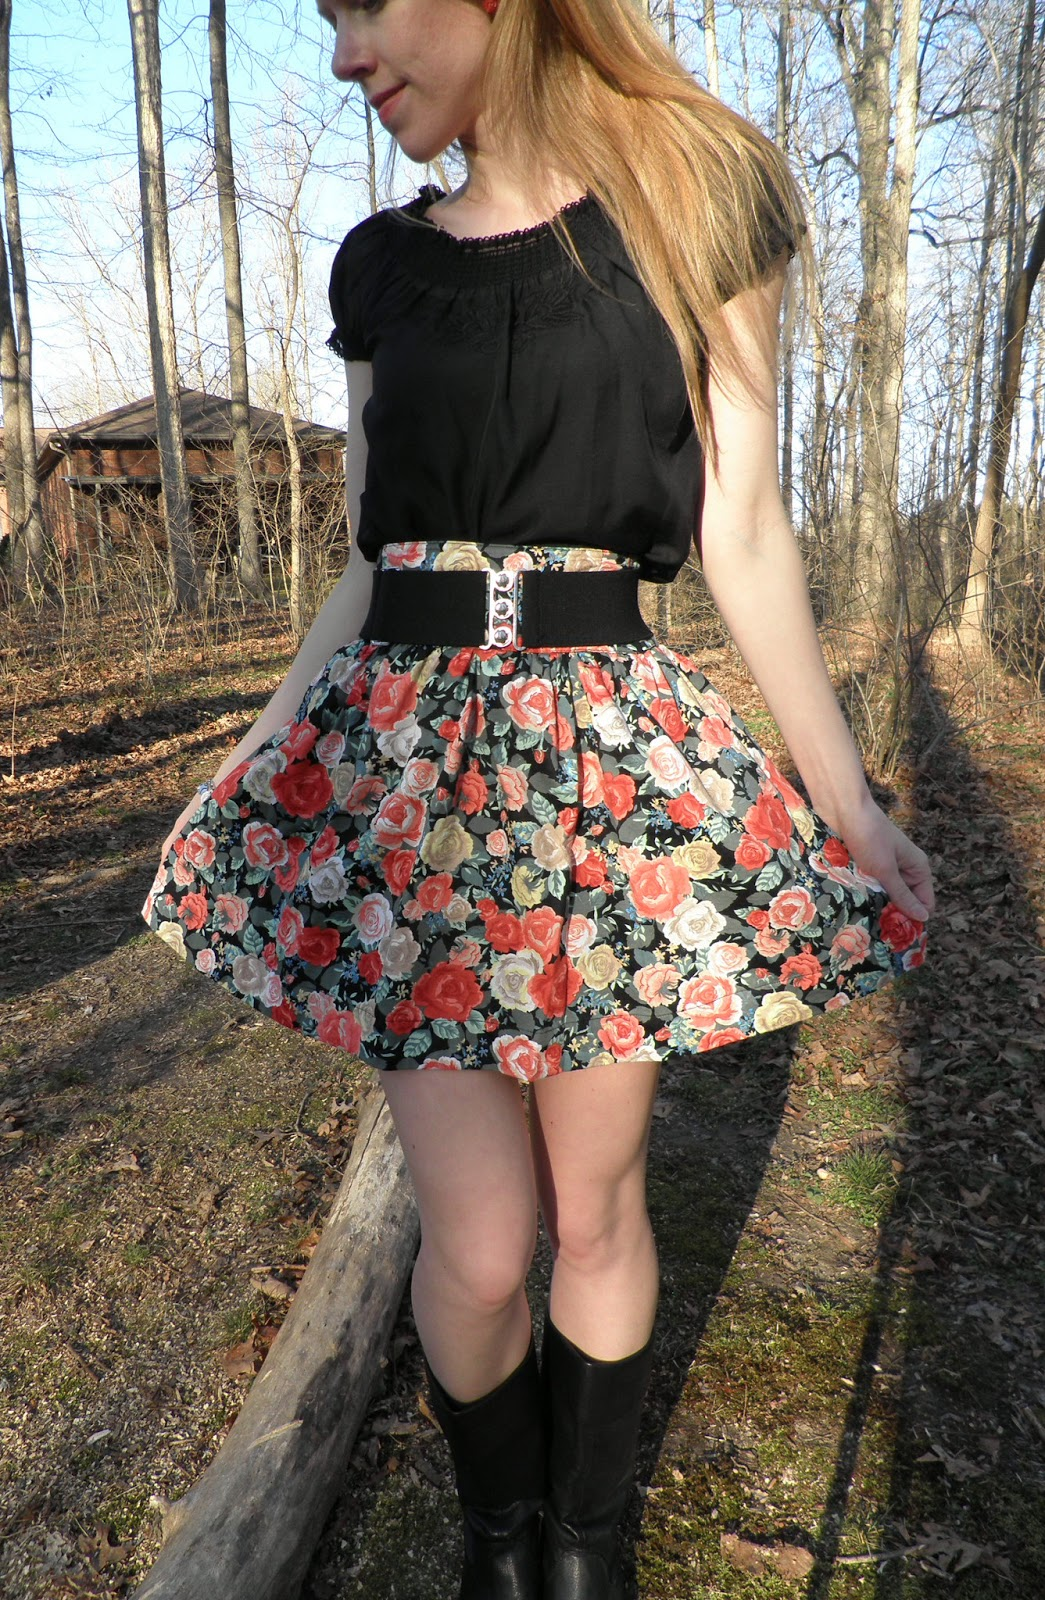 Buy Floral black skirt tumblr photo picture trends